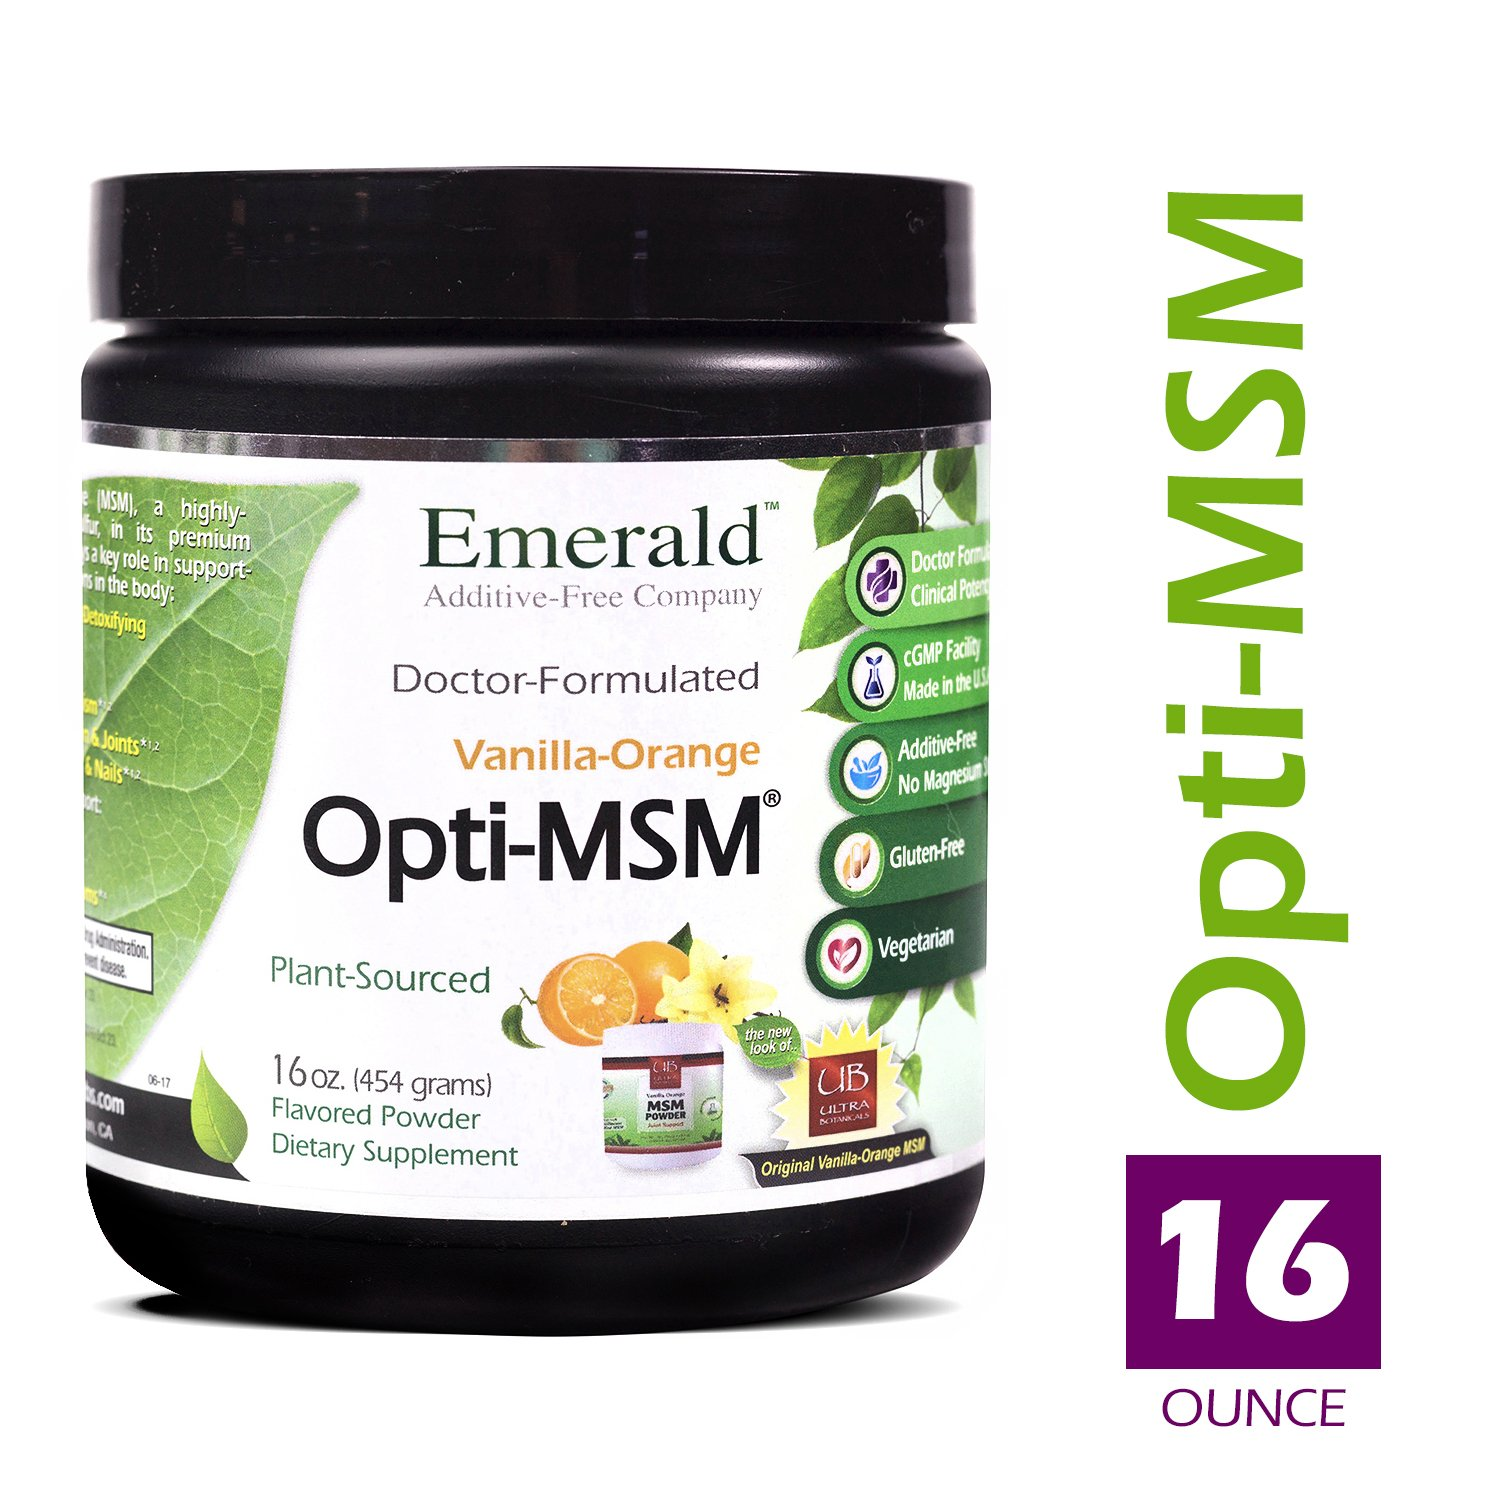 MSM Powder - Joint Support for Aches & Pains, Anti-Inflammatory, Stress Relief, Supports Digestive System, & Allergy Relief - Vanilla Orange Flavor - Emerald Laboratories (Ultra Botanicals) - 16 oz